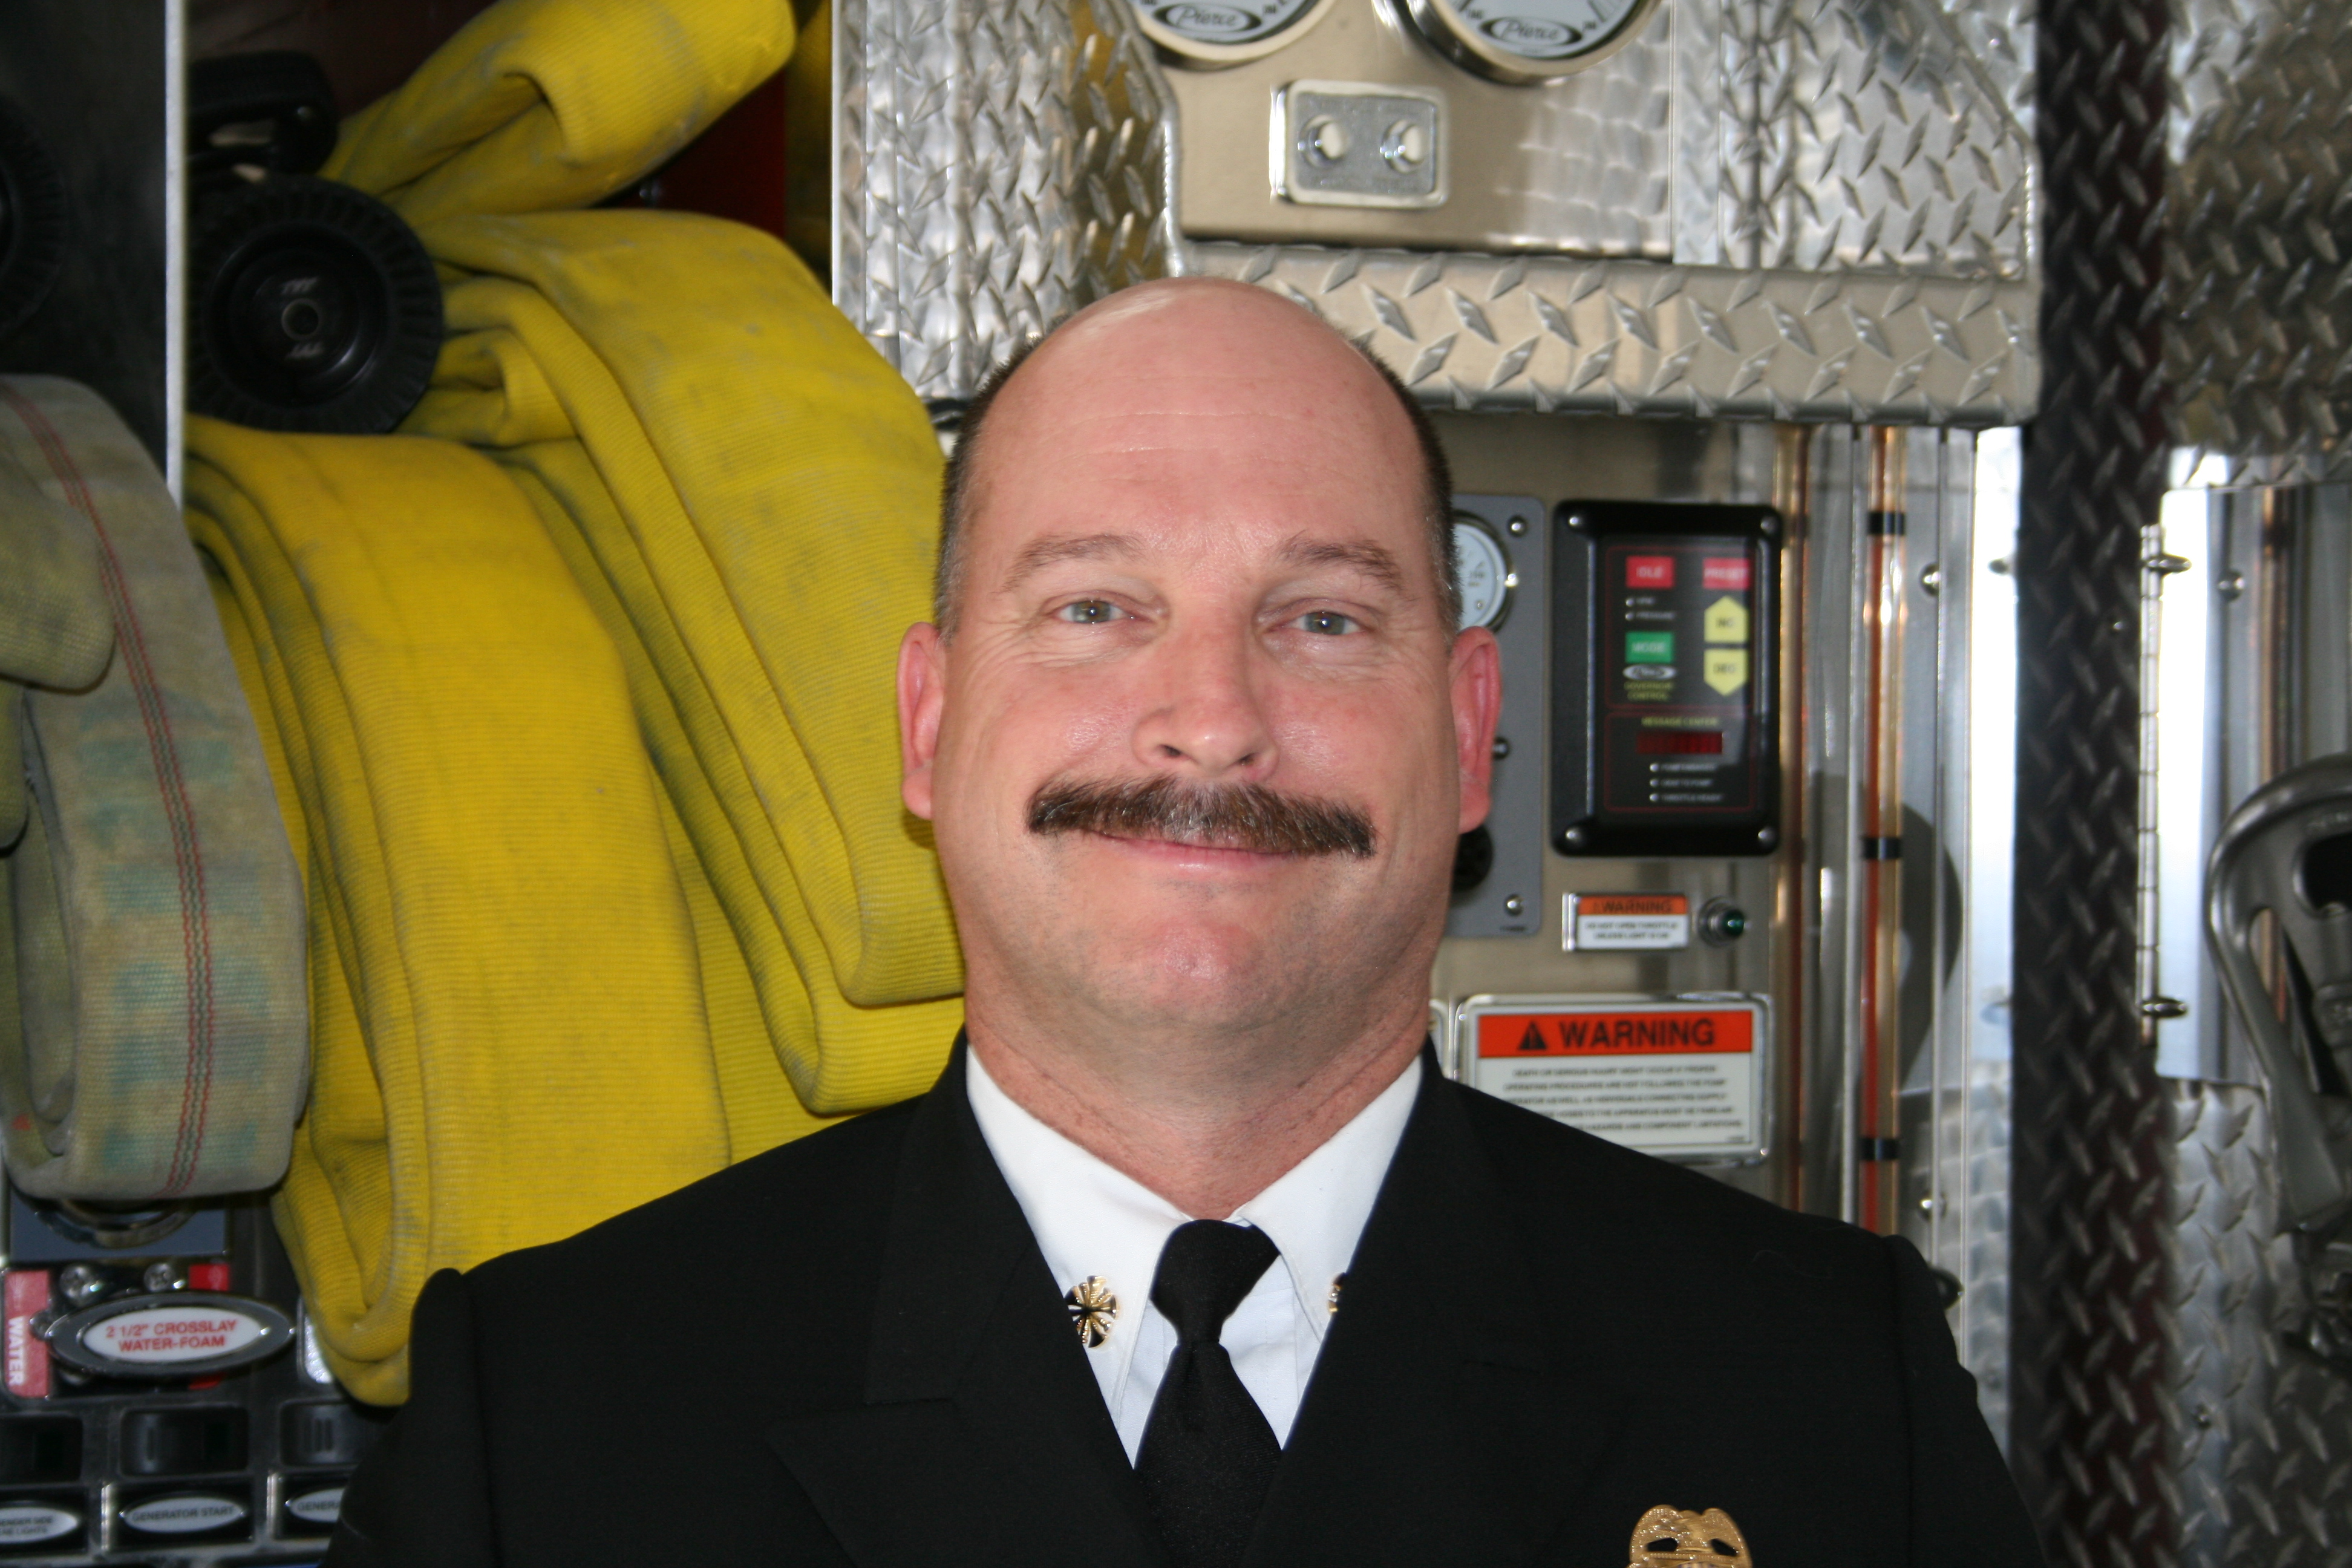 Fire Chief Steve Knuckles